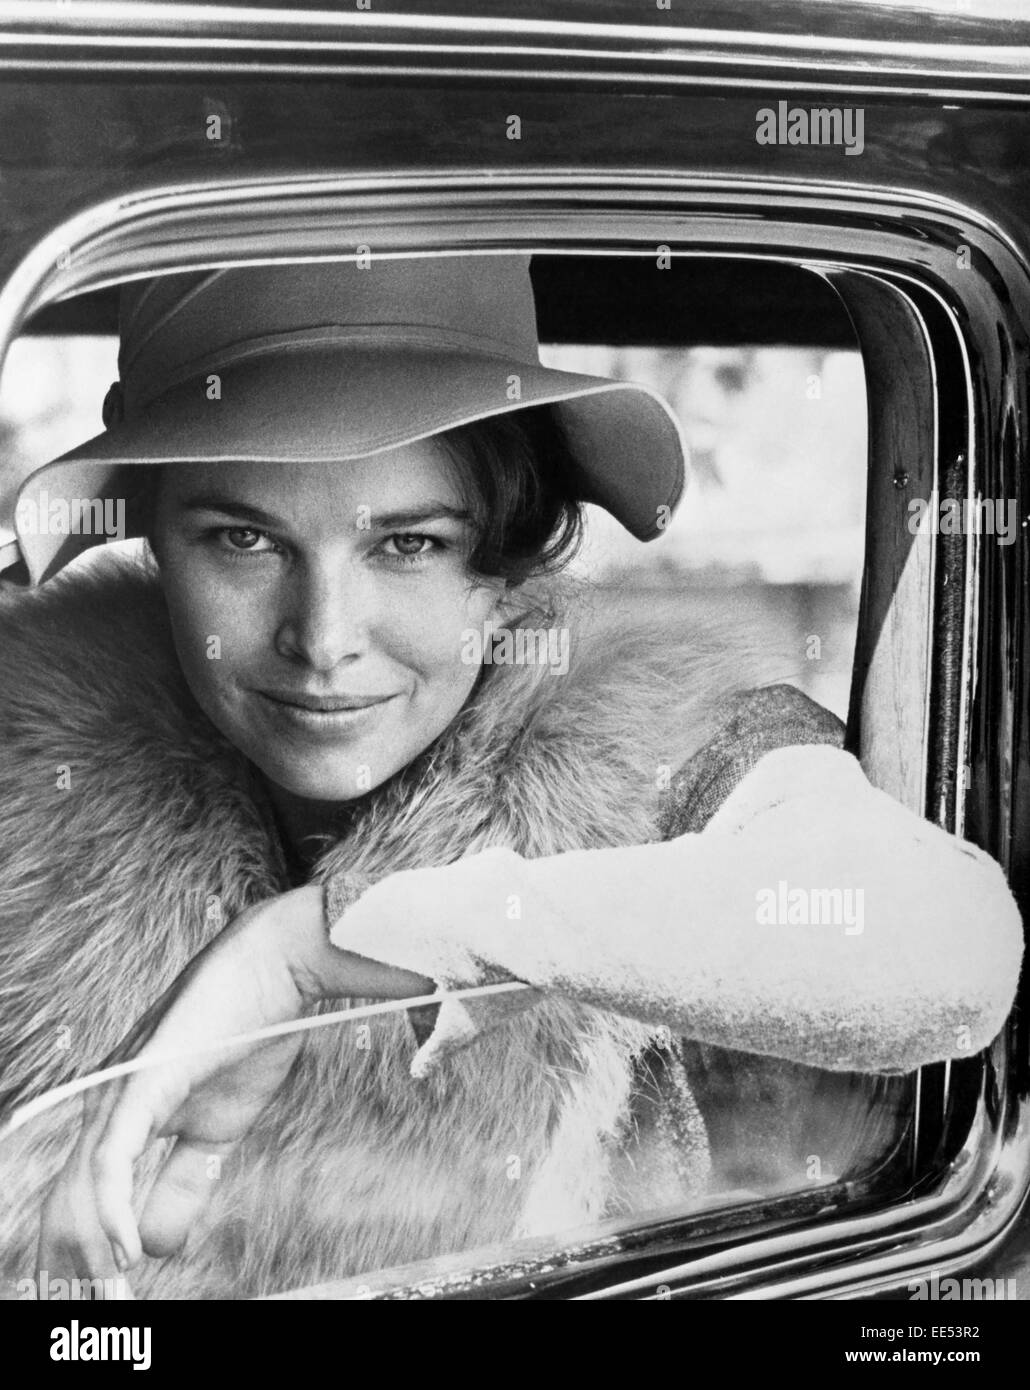 Michelle Philips, on-set of the Film, 'Dillinger', 1973 - Stock Image